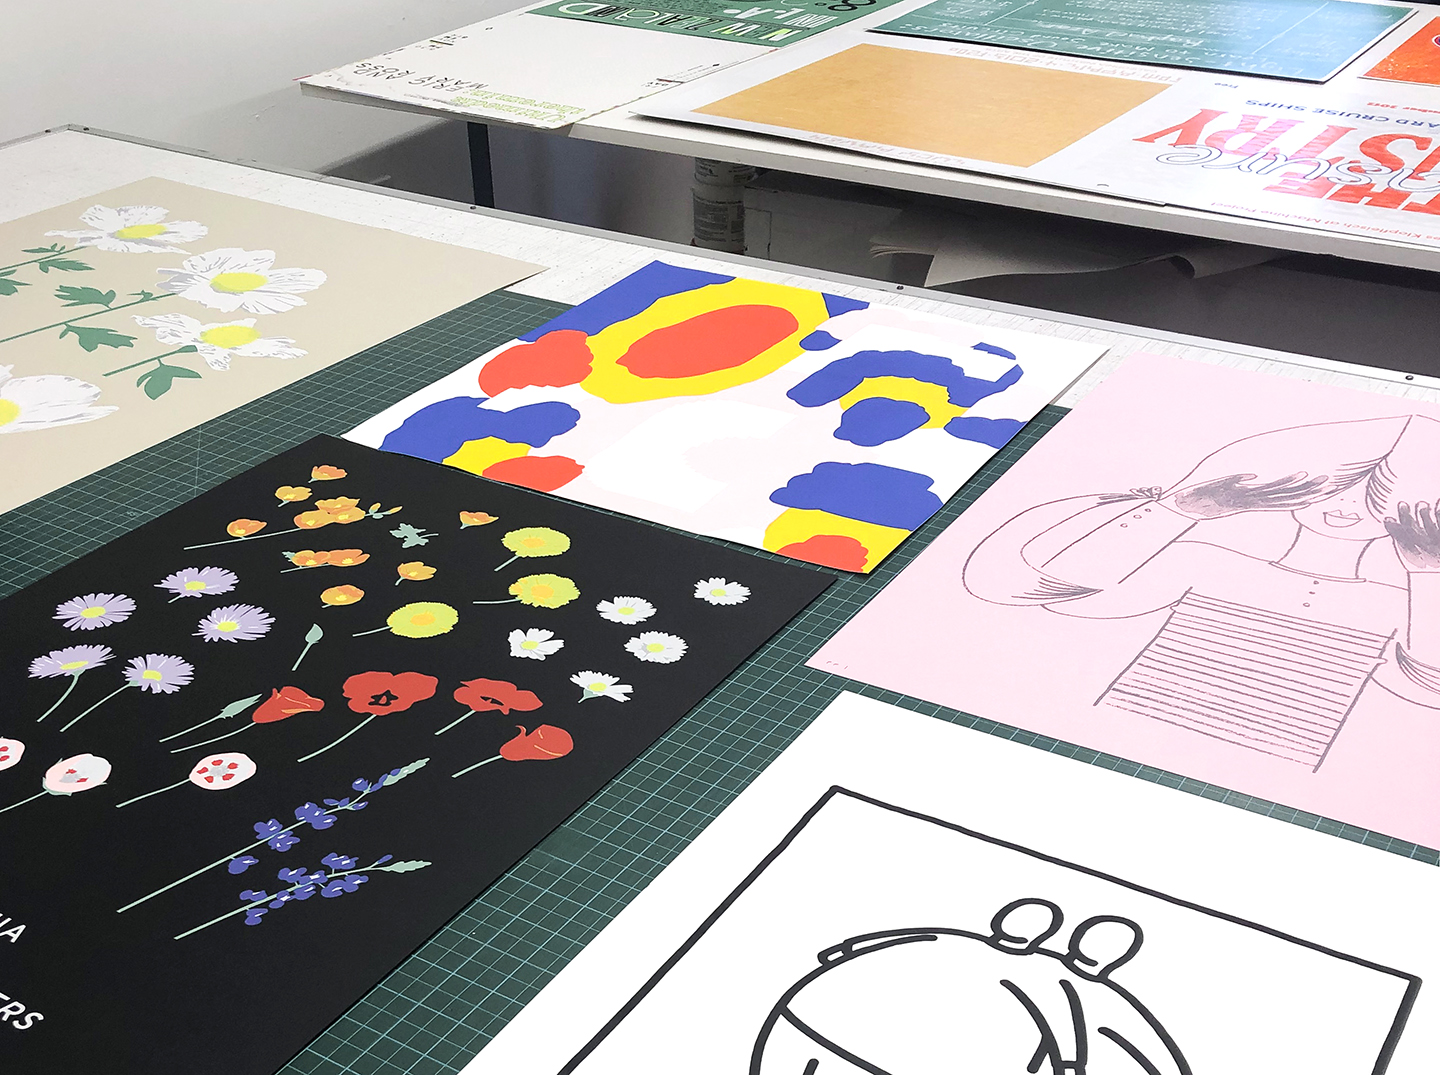 Studio visit with Tom Kracauer in Los Angeles from the Print Club Ltd. Journal